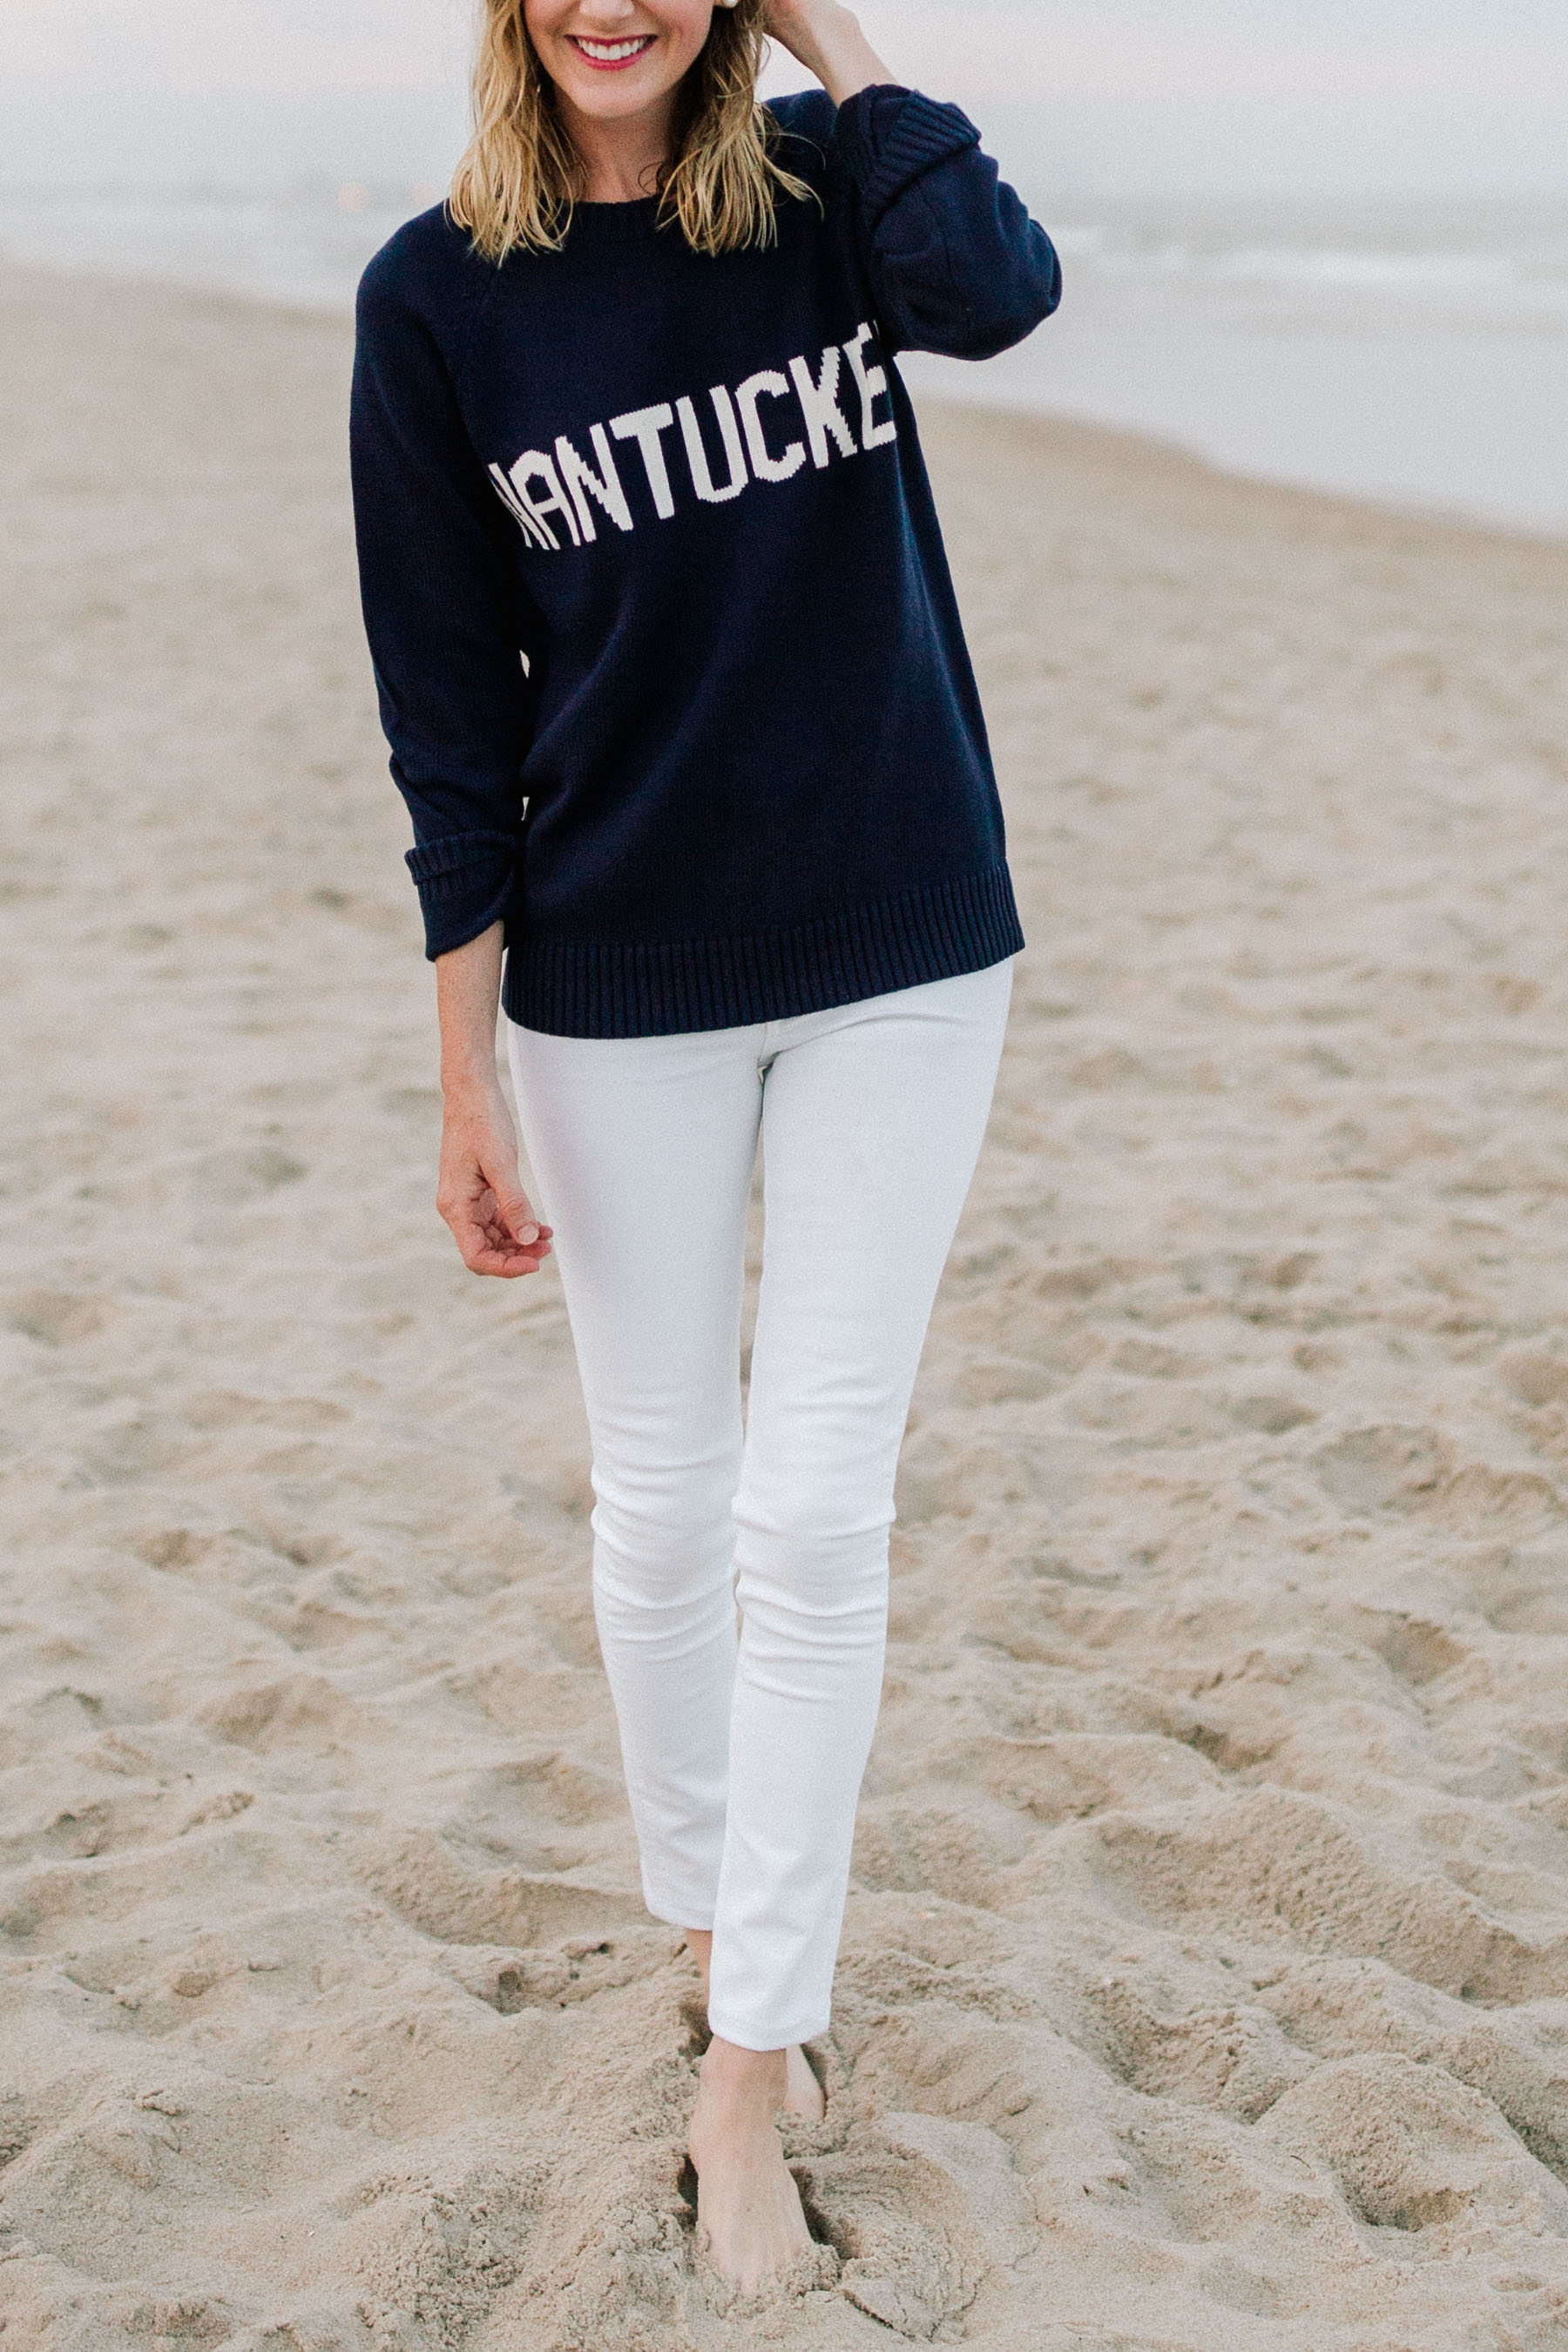 Nantucket Sweater | white jeans - Kelly in the City